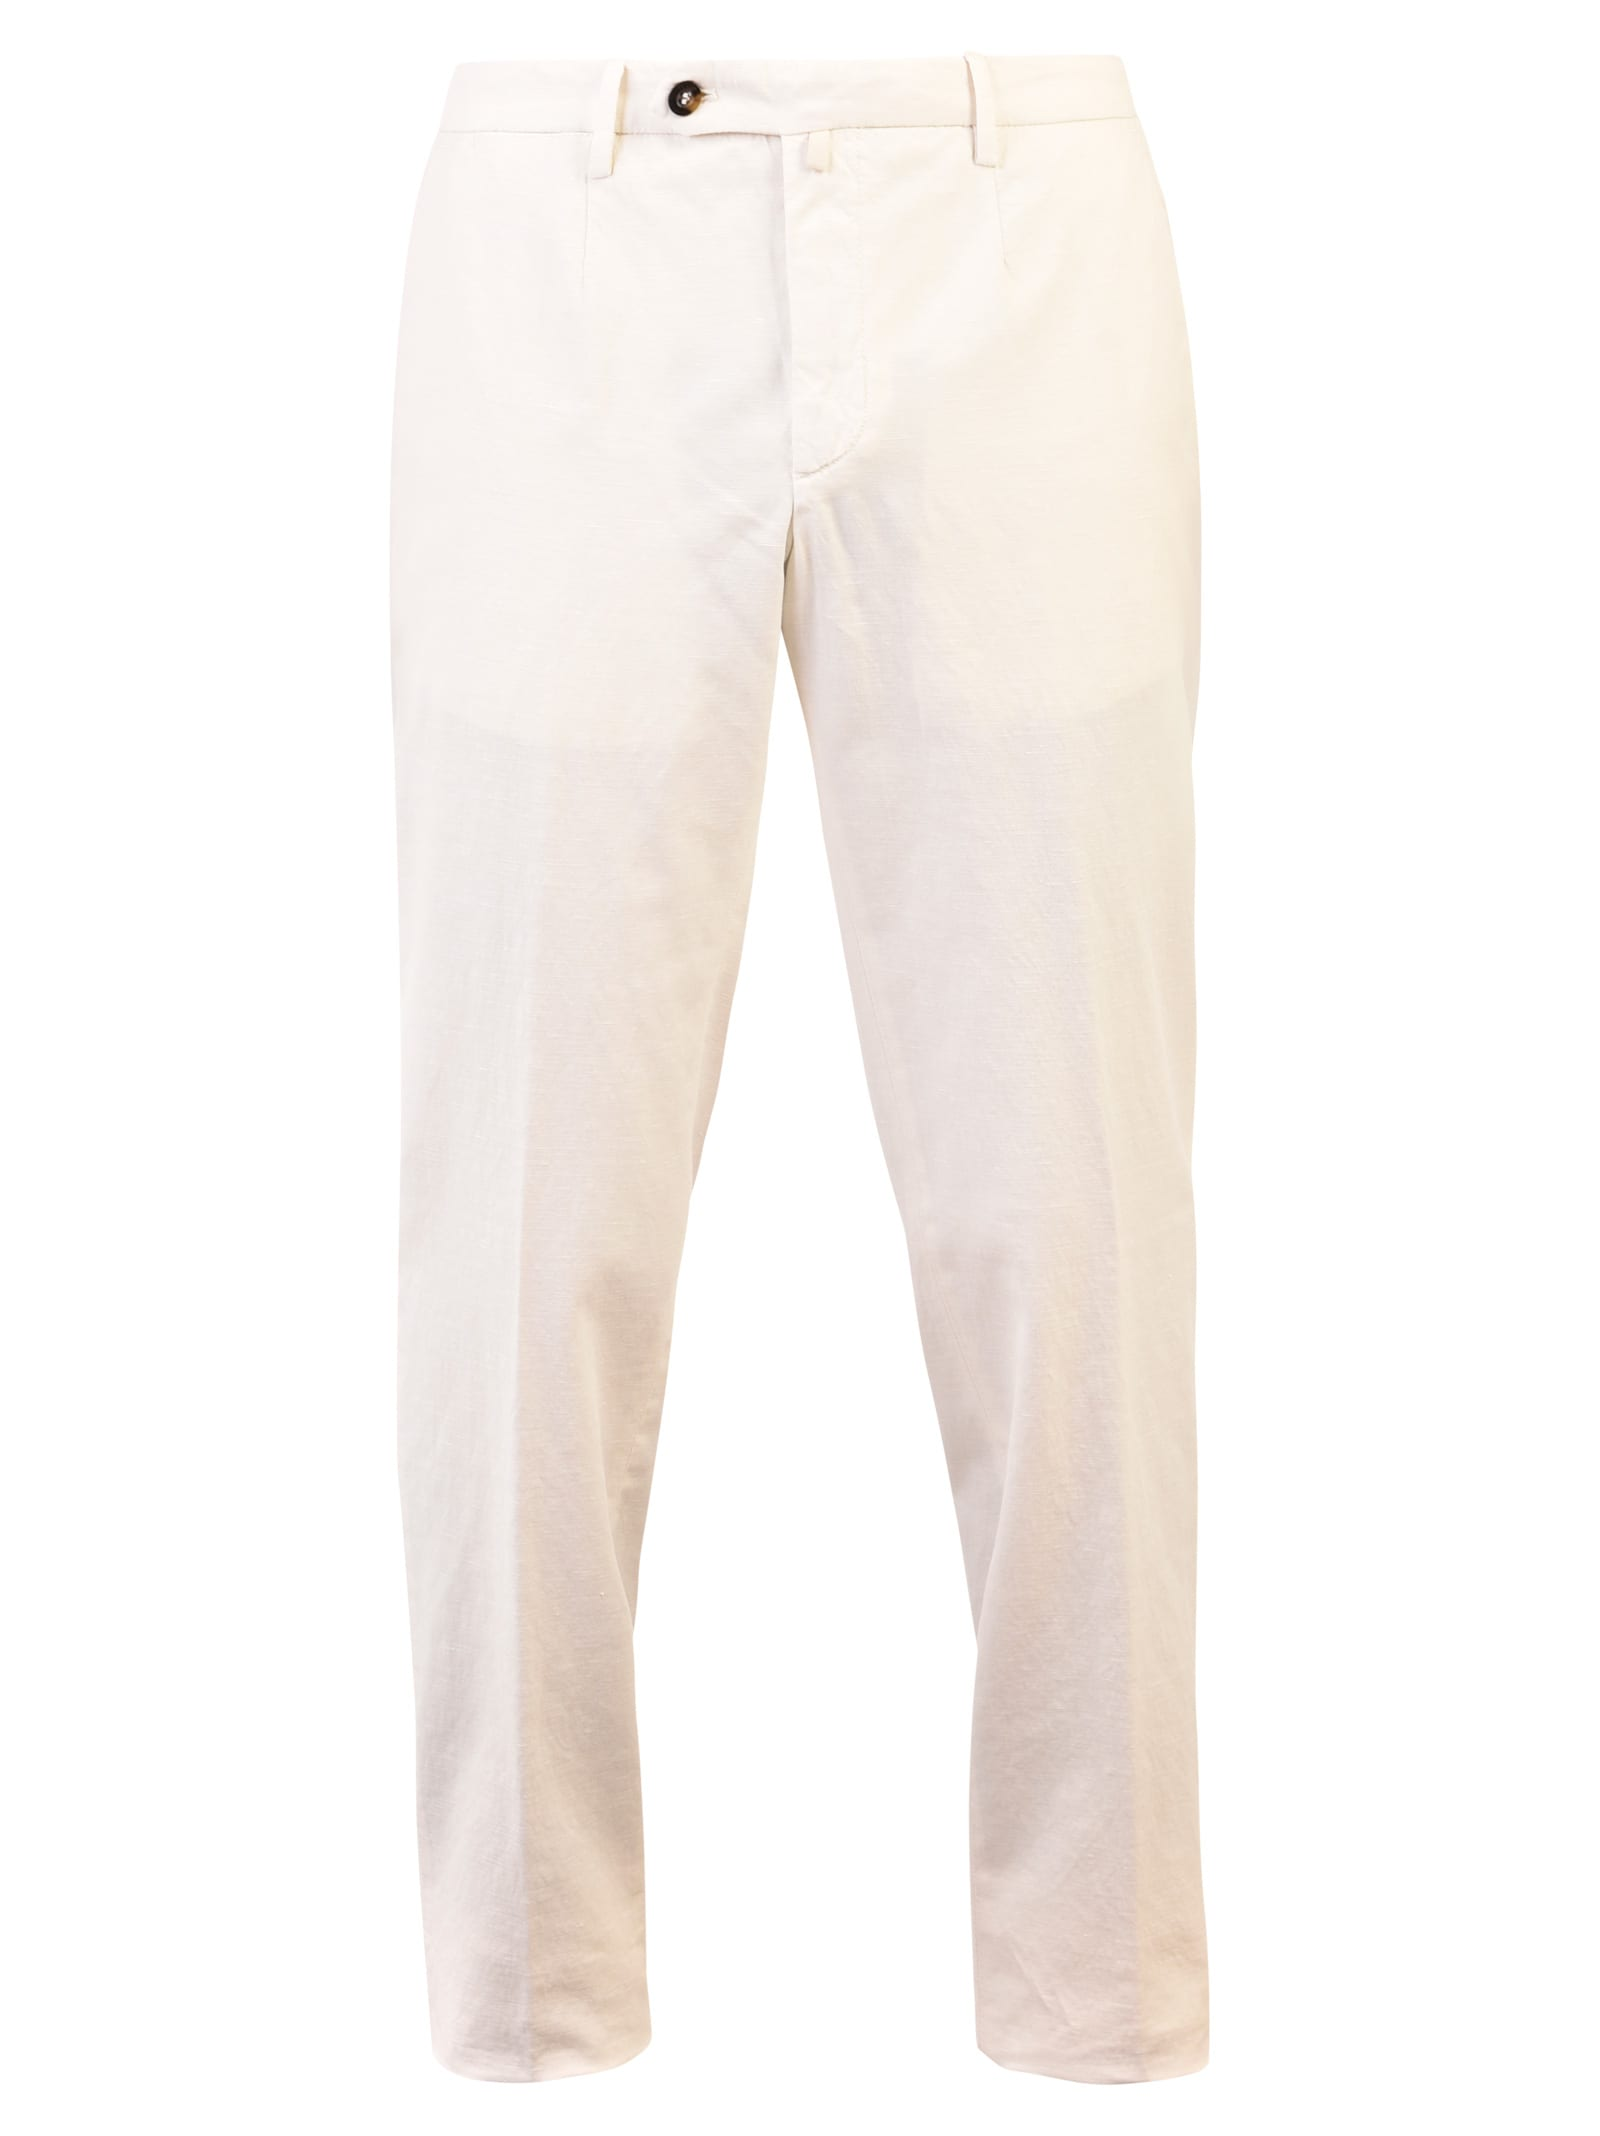 1949 White Trousers